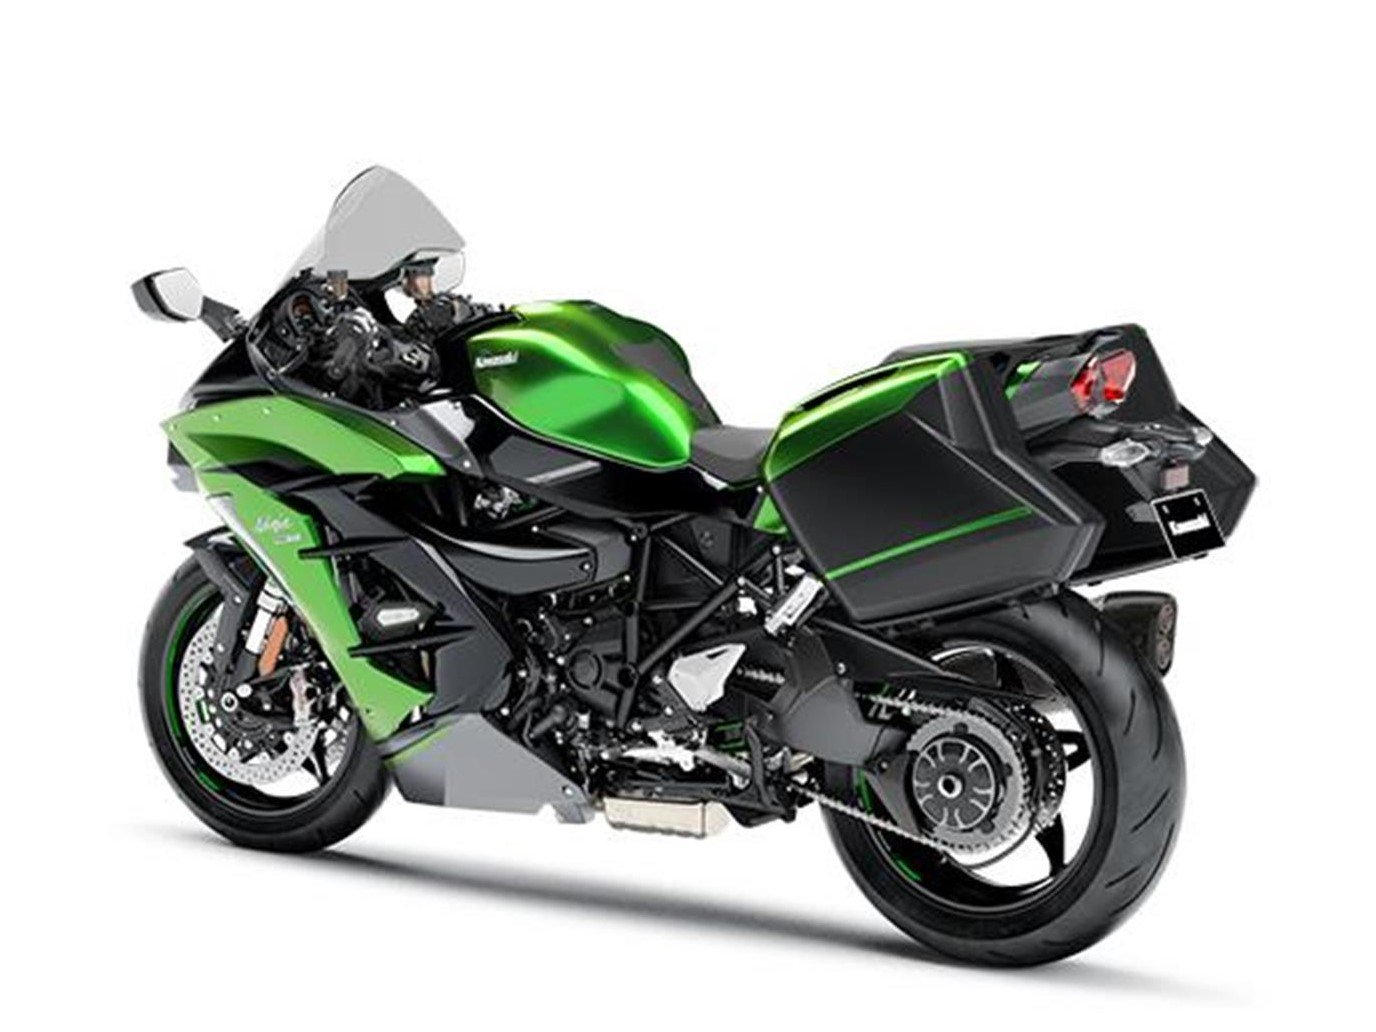 New 2020 Kawasaki Ninja H2 SX SE + Perf Tourer**£1,500 PAID* For Sale (picture 2 of 6)